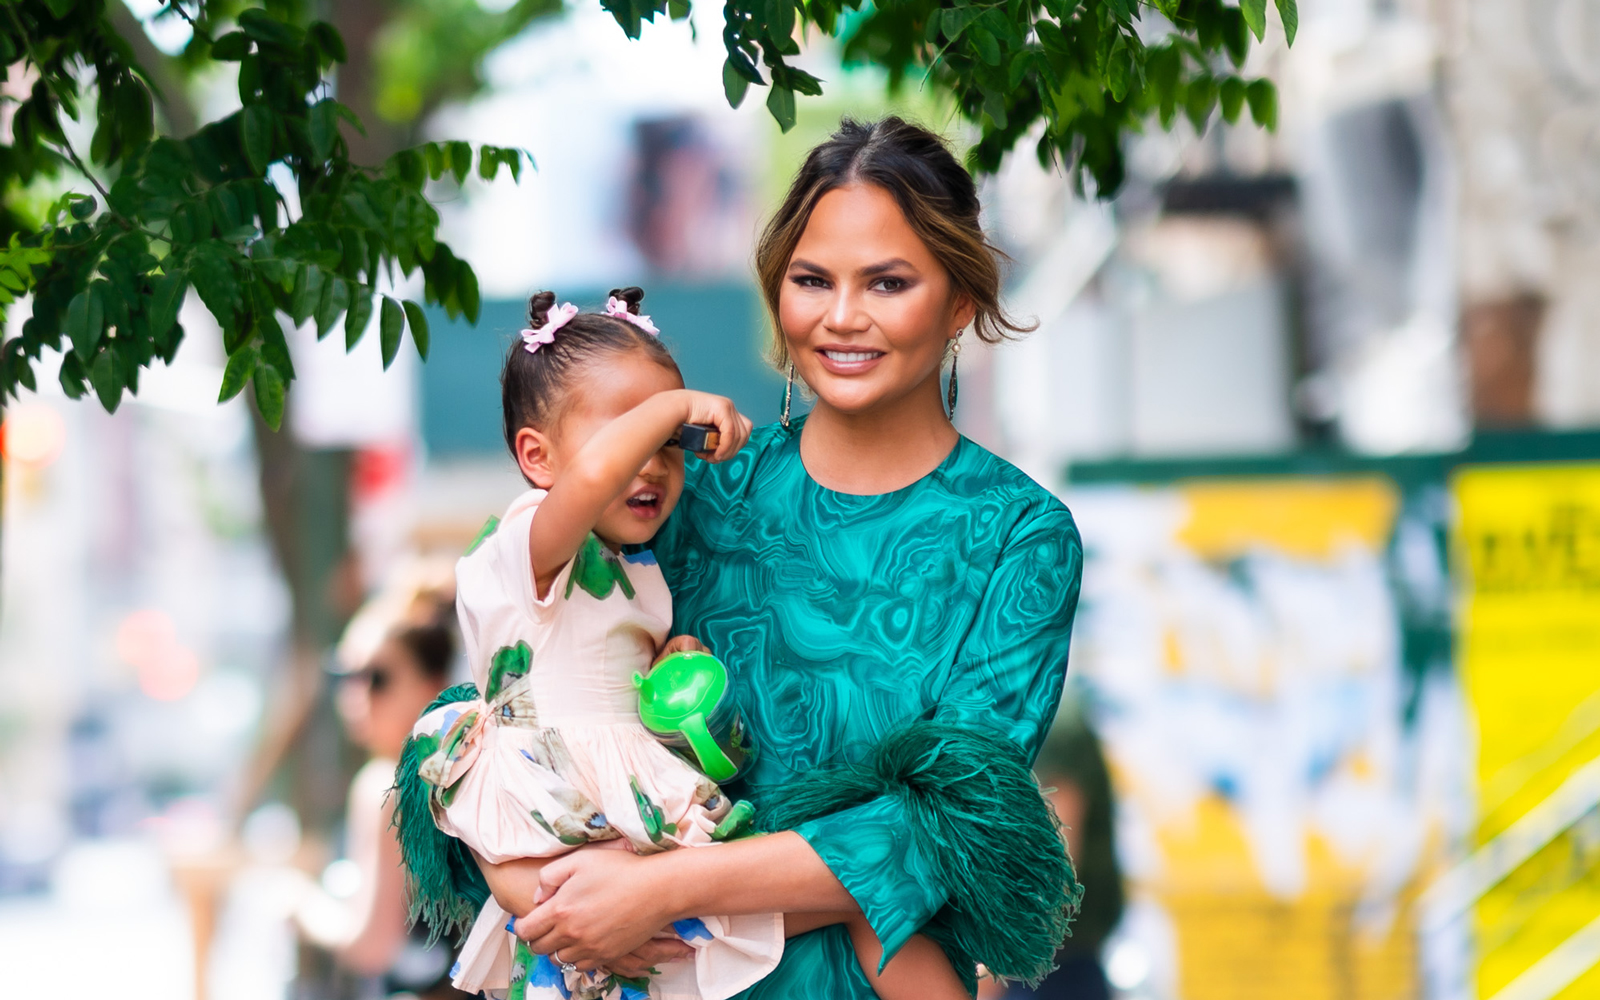 Chrissy Teigen Asked Twitter Whether or Not She Could Bring Cold Gravy on a Plane